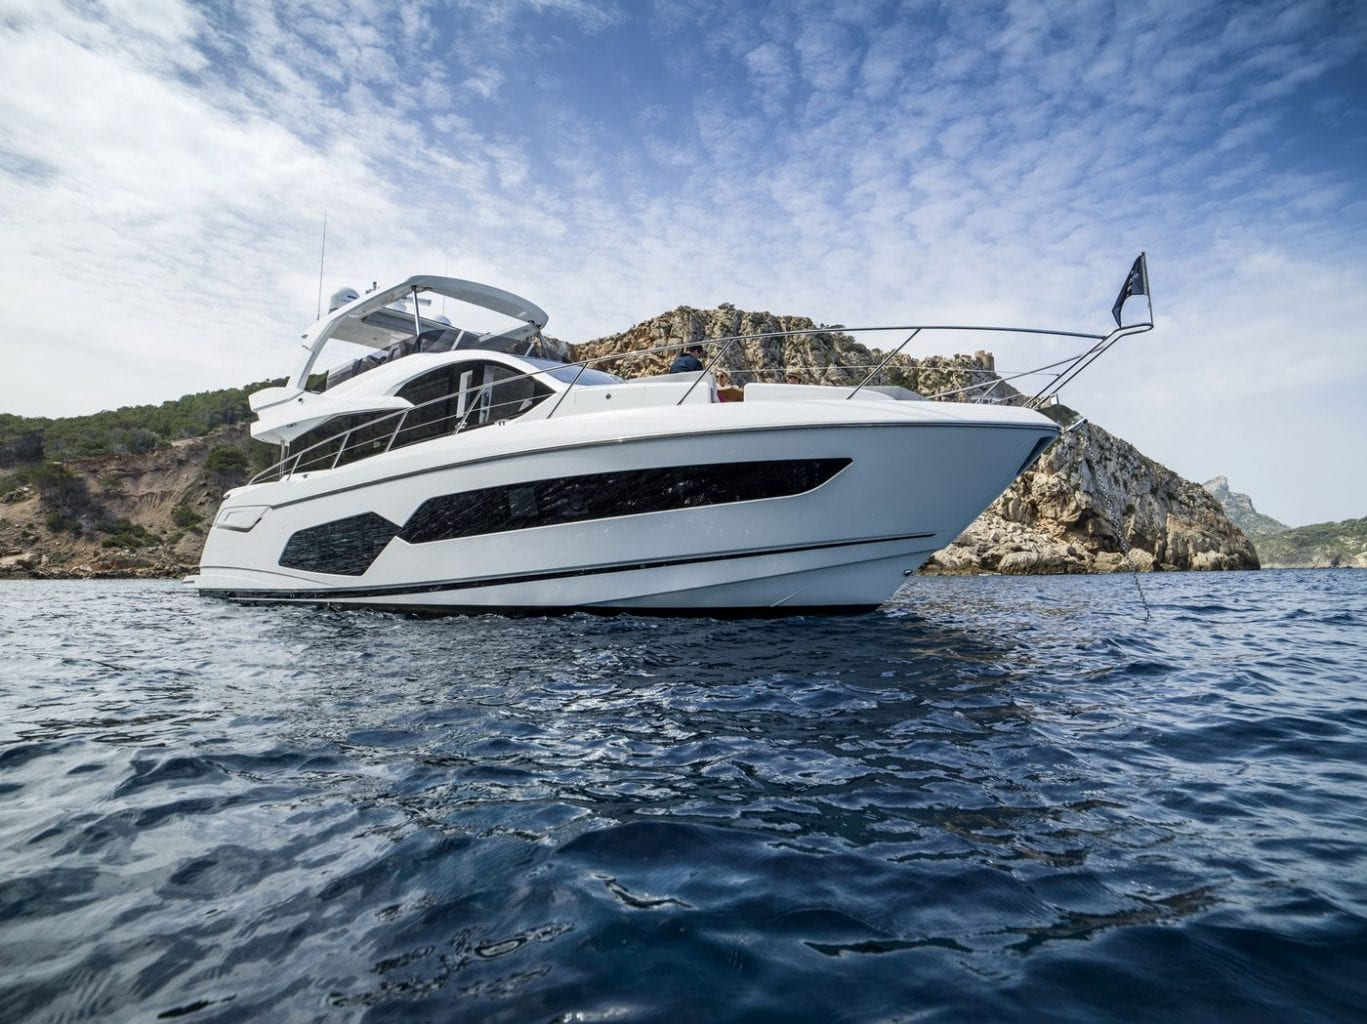 יאכטה Sunseeker Manhattan 66 - יאכטה Sunseeker Manhattan 66 - סטרים יאכטות